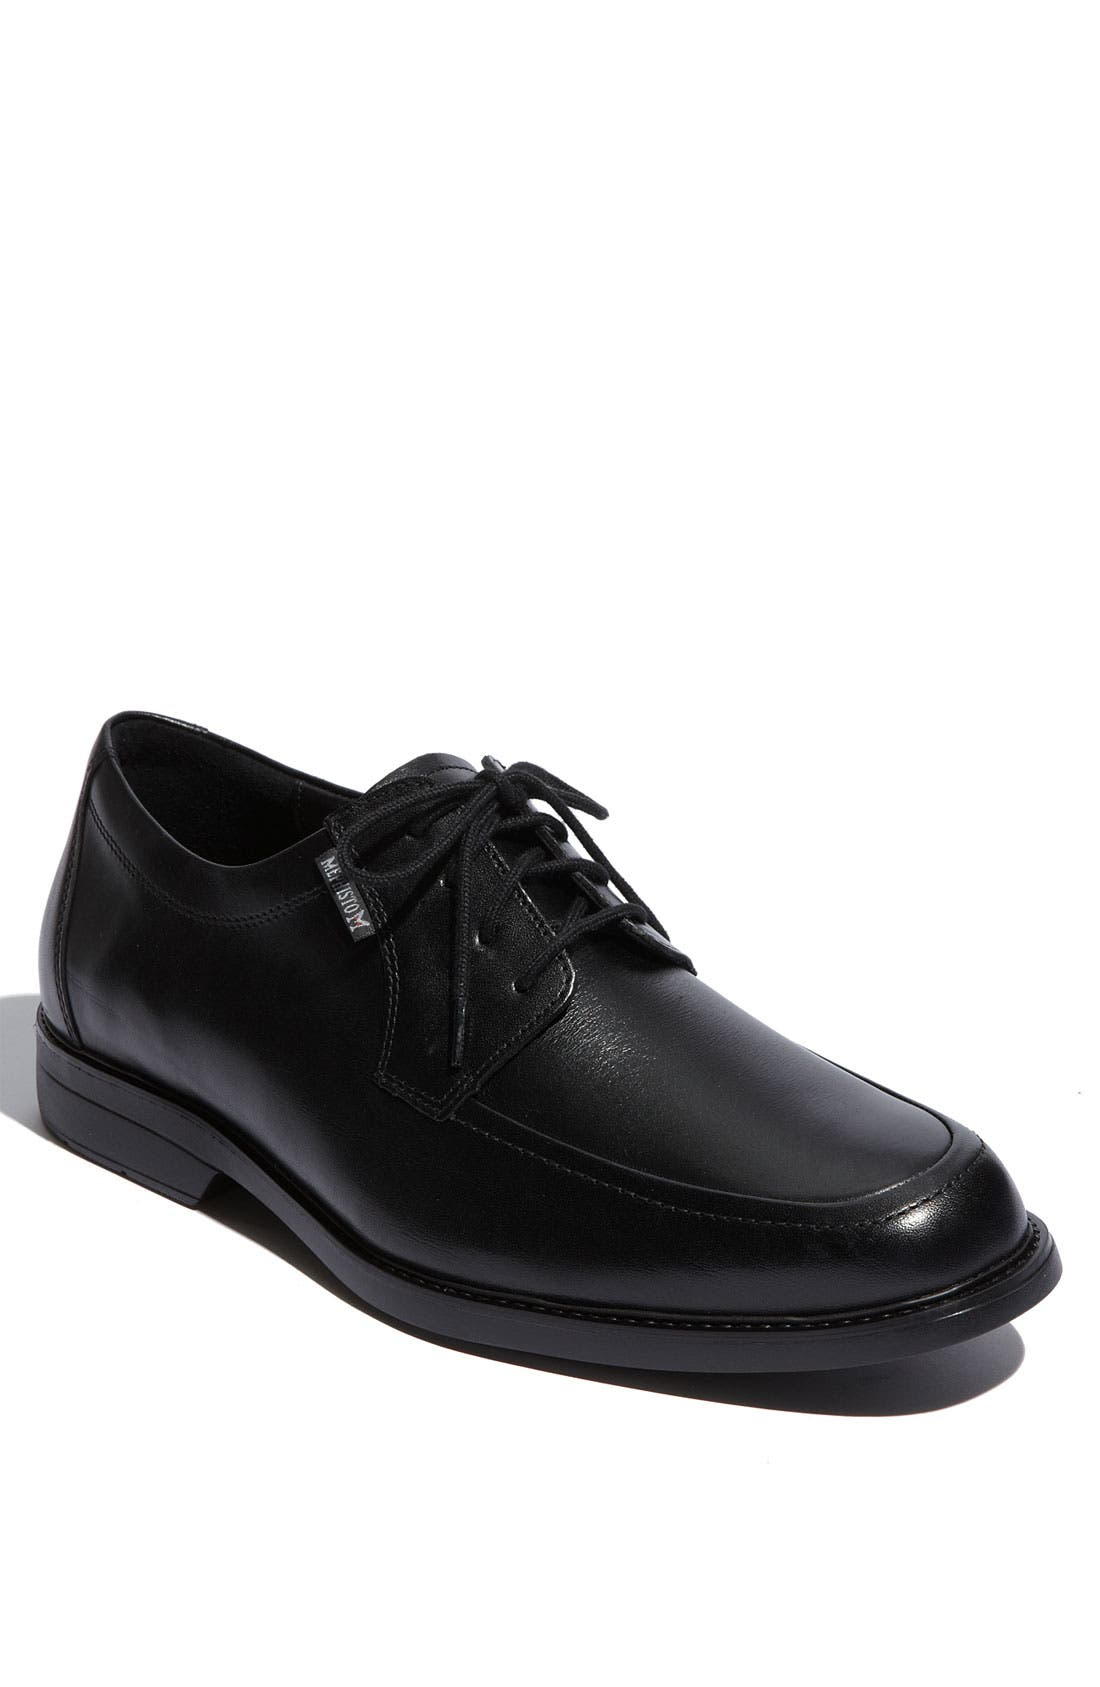 Main Image - Mephisto 'Gusto' Oxford (Men)